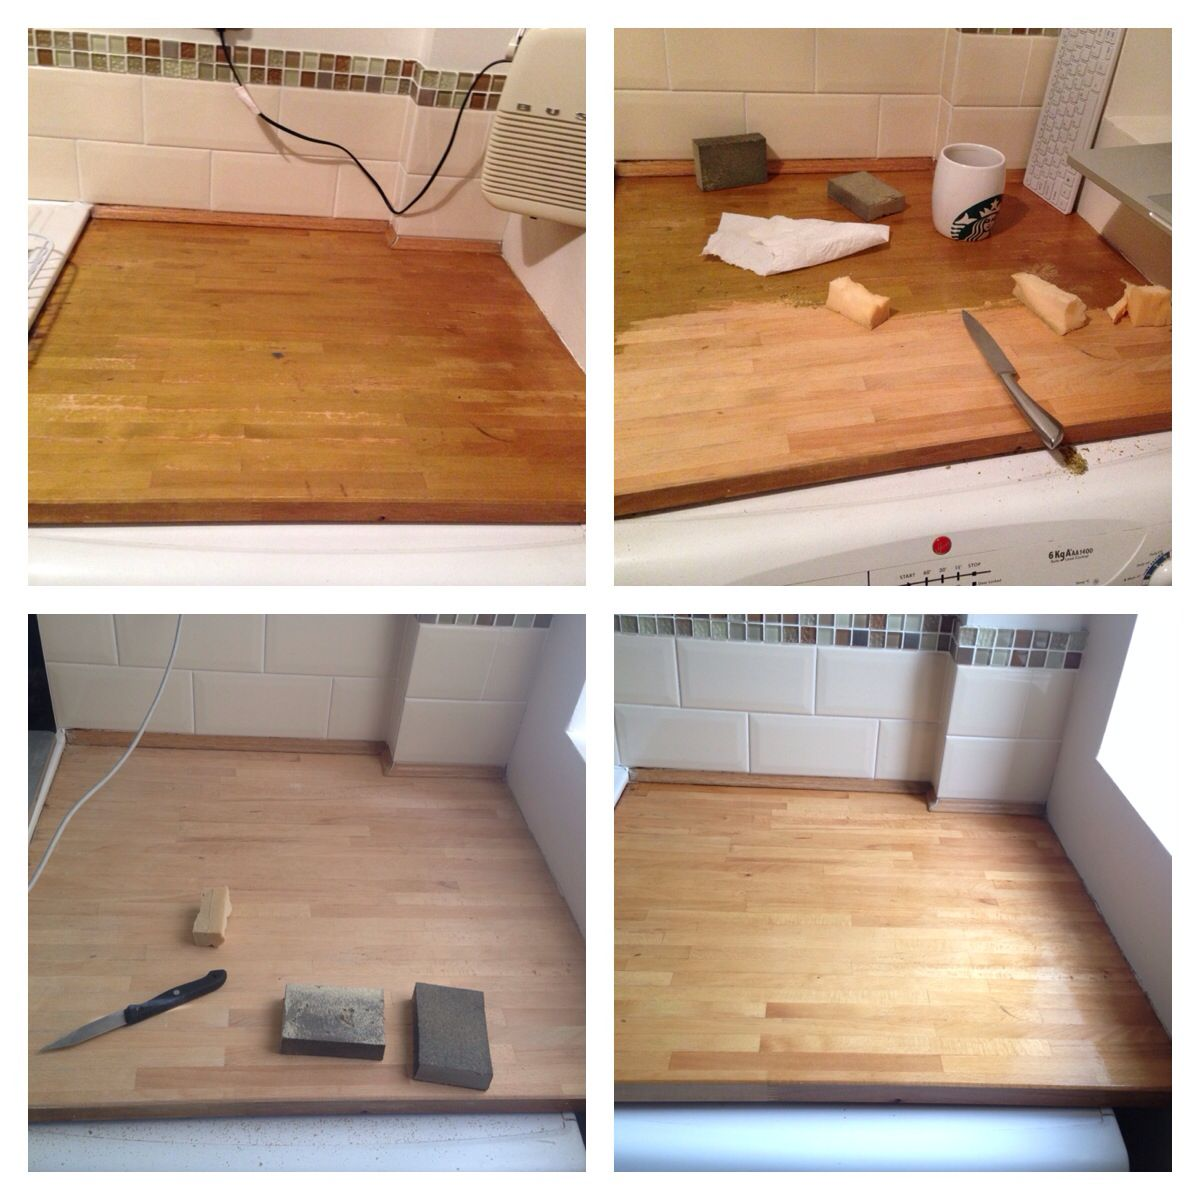 Kitchen worktop resealing with Howdens Solid Wood Worktop